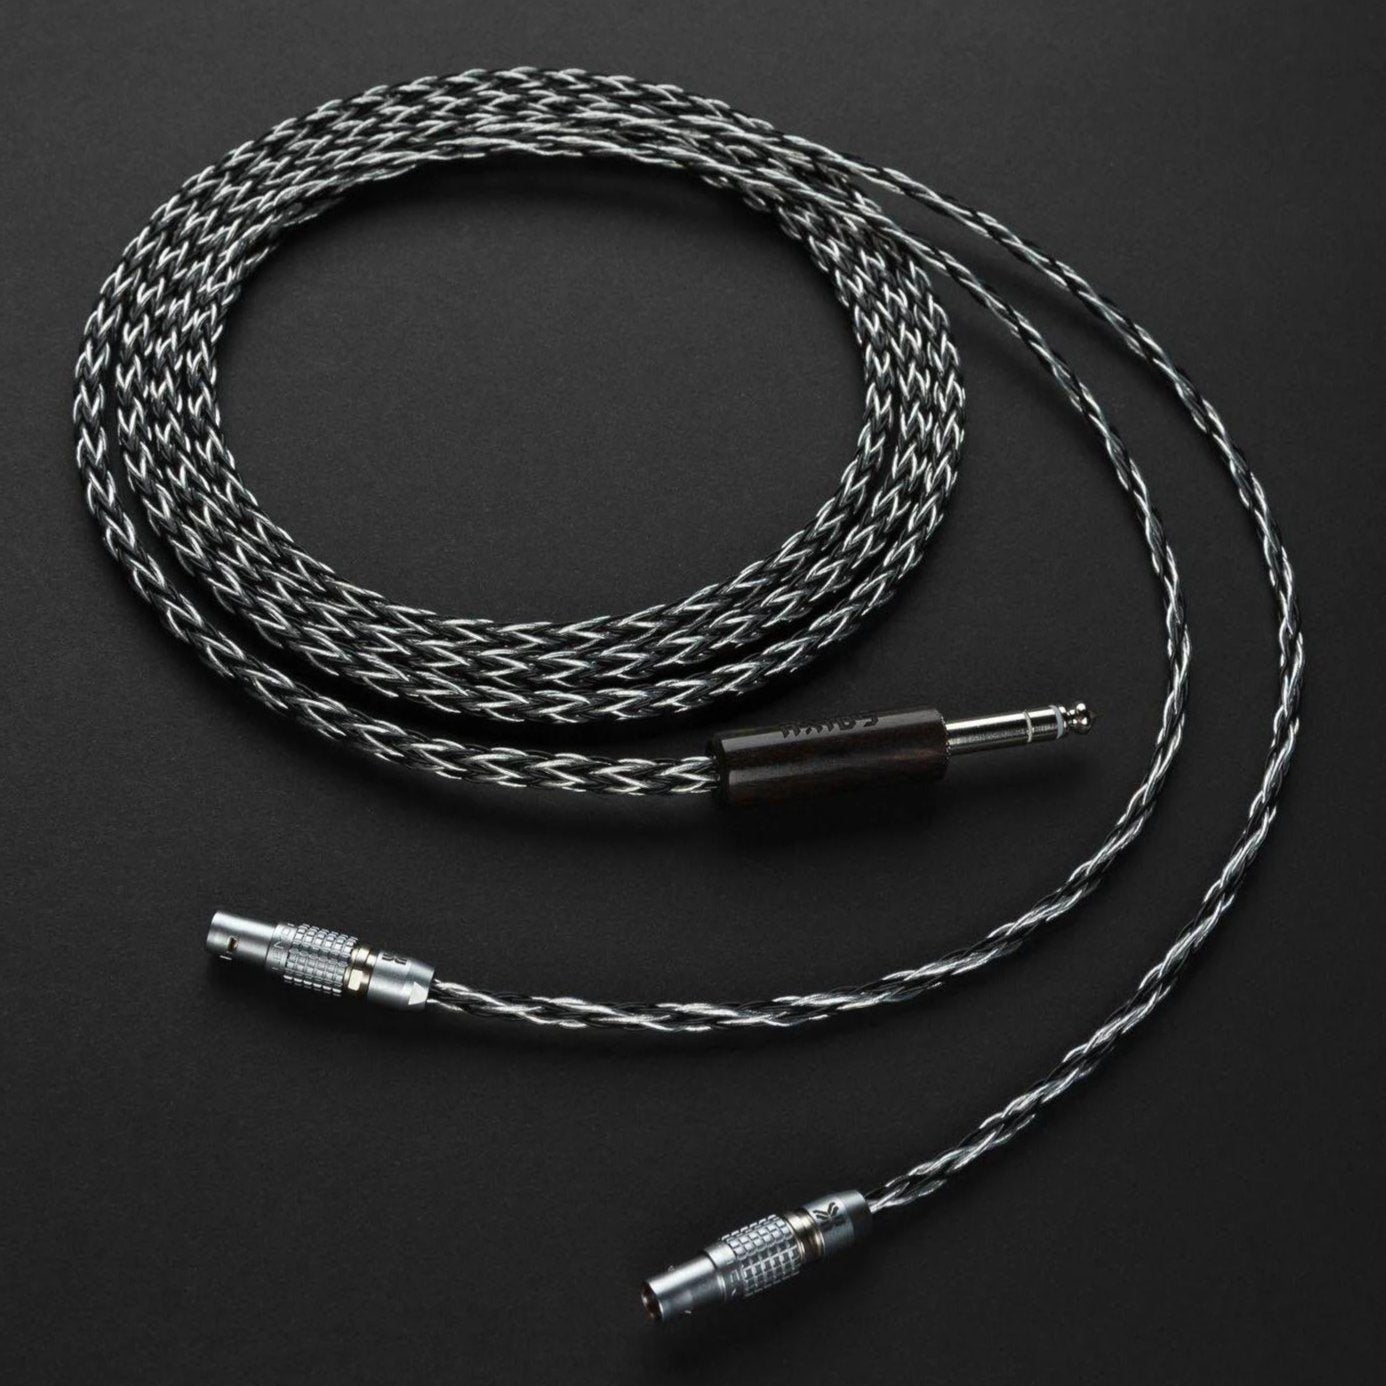 Kimber Kable Axios Hybrid Silver/Copper Headphone Cable